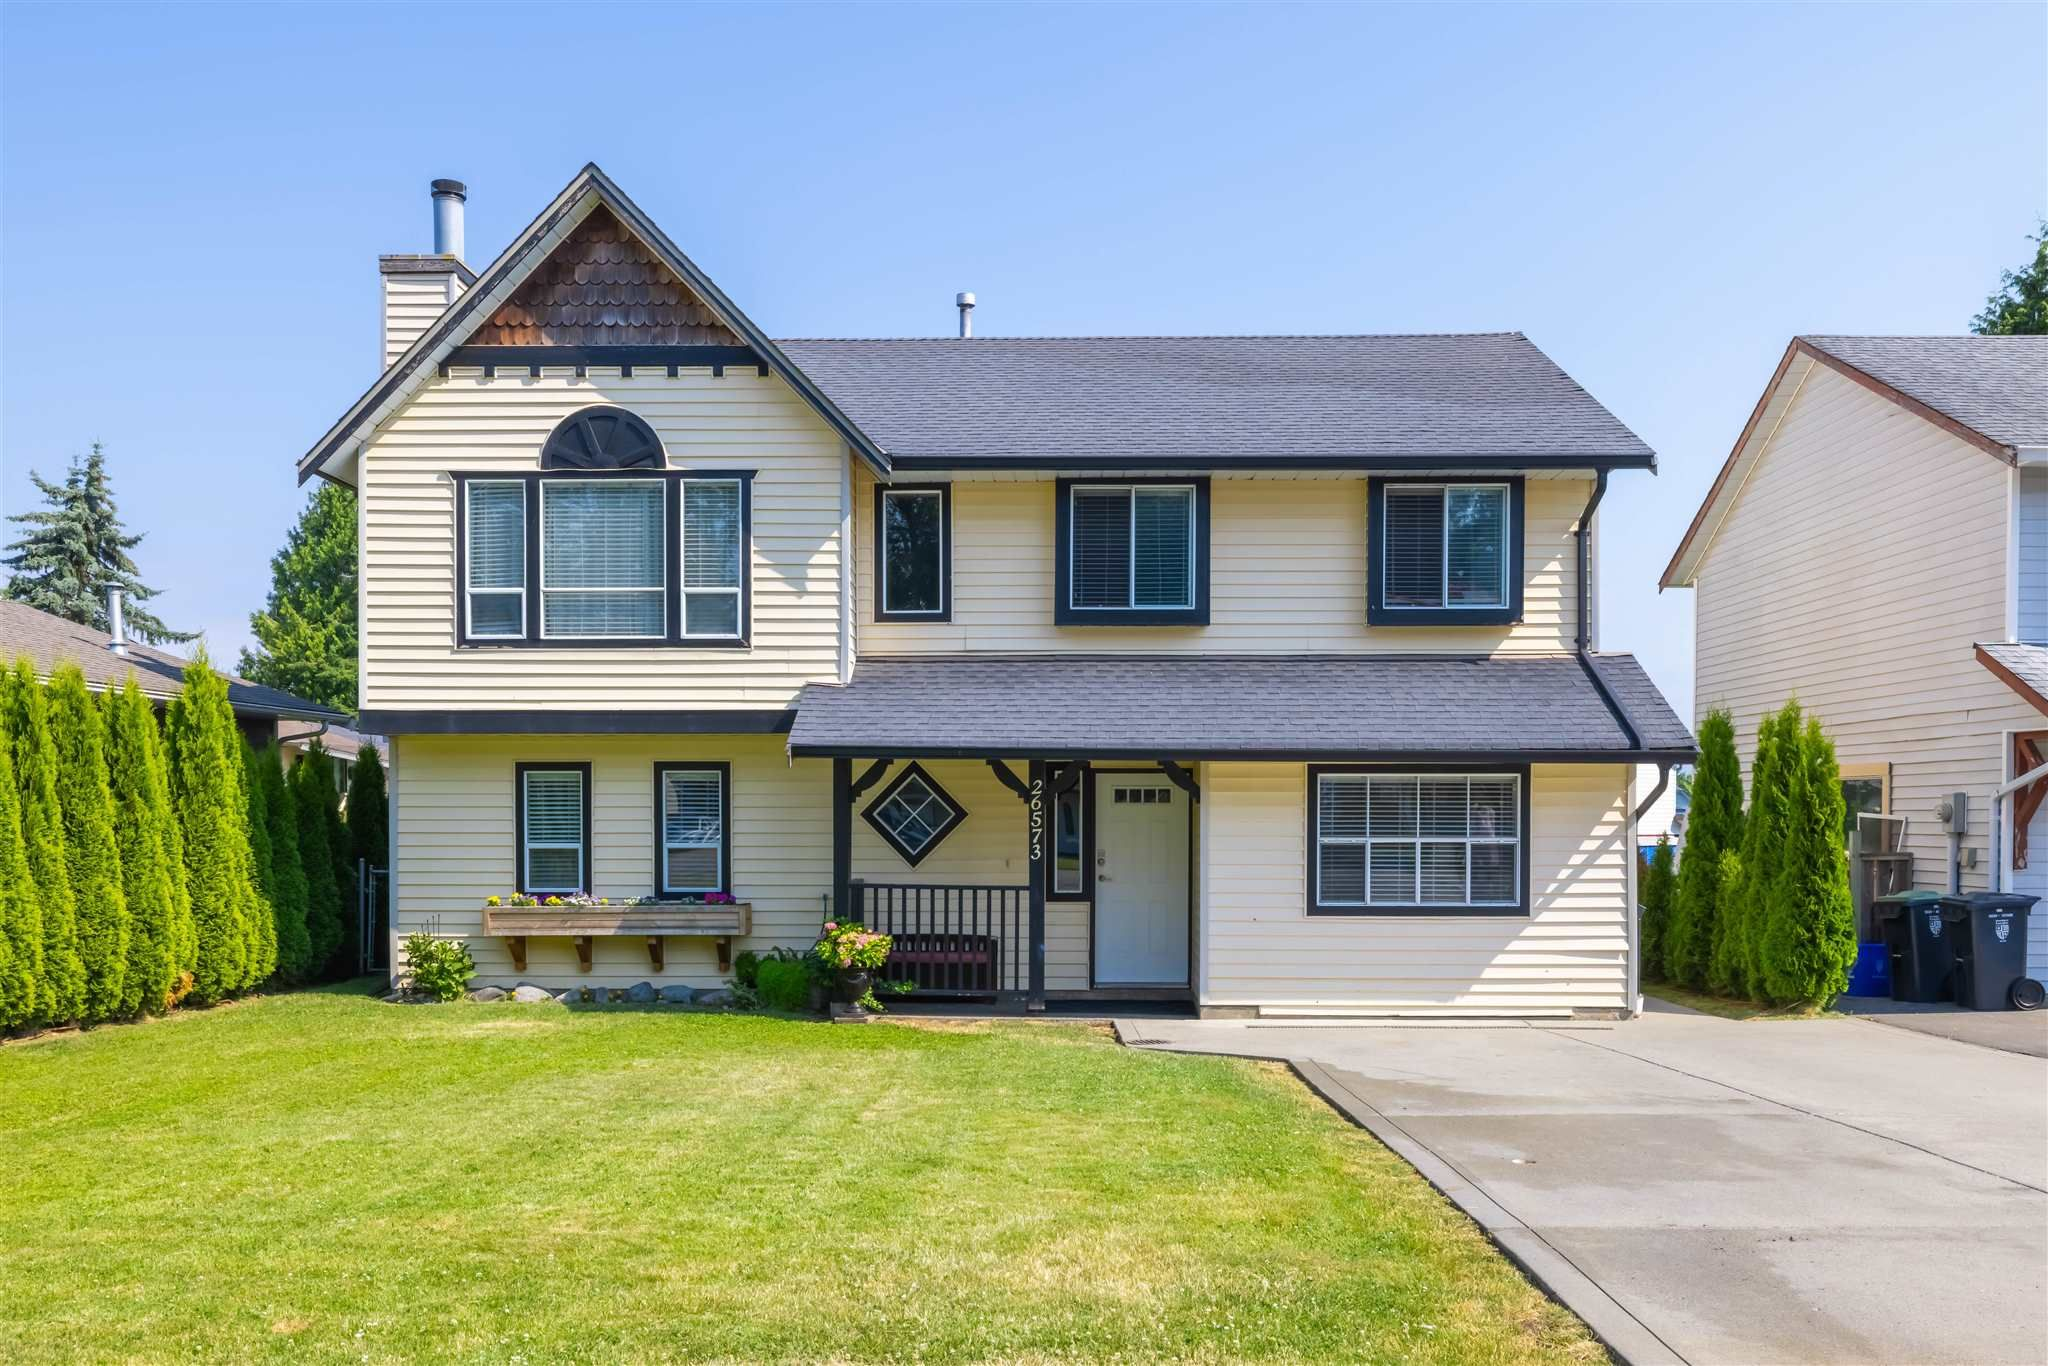 Main Photo: 26573 29B Avenue in Langley: Aldergrove Langley House for sale : MLS®# R2598515